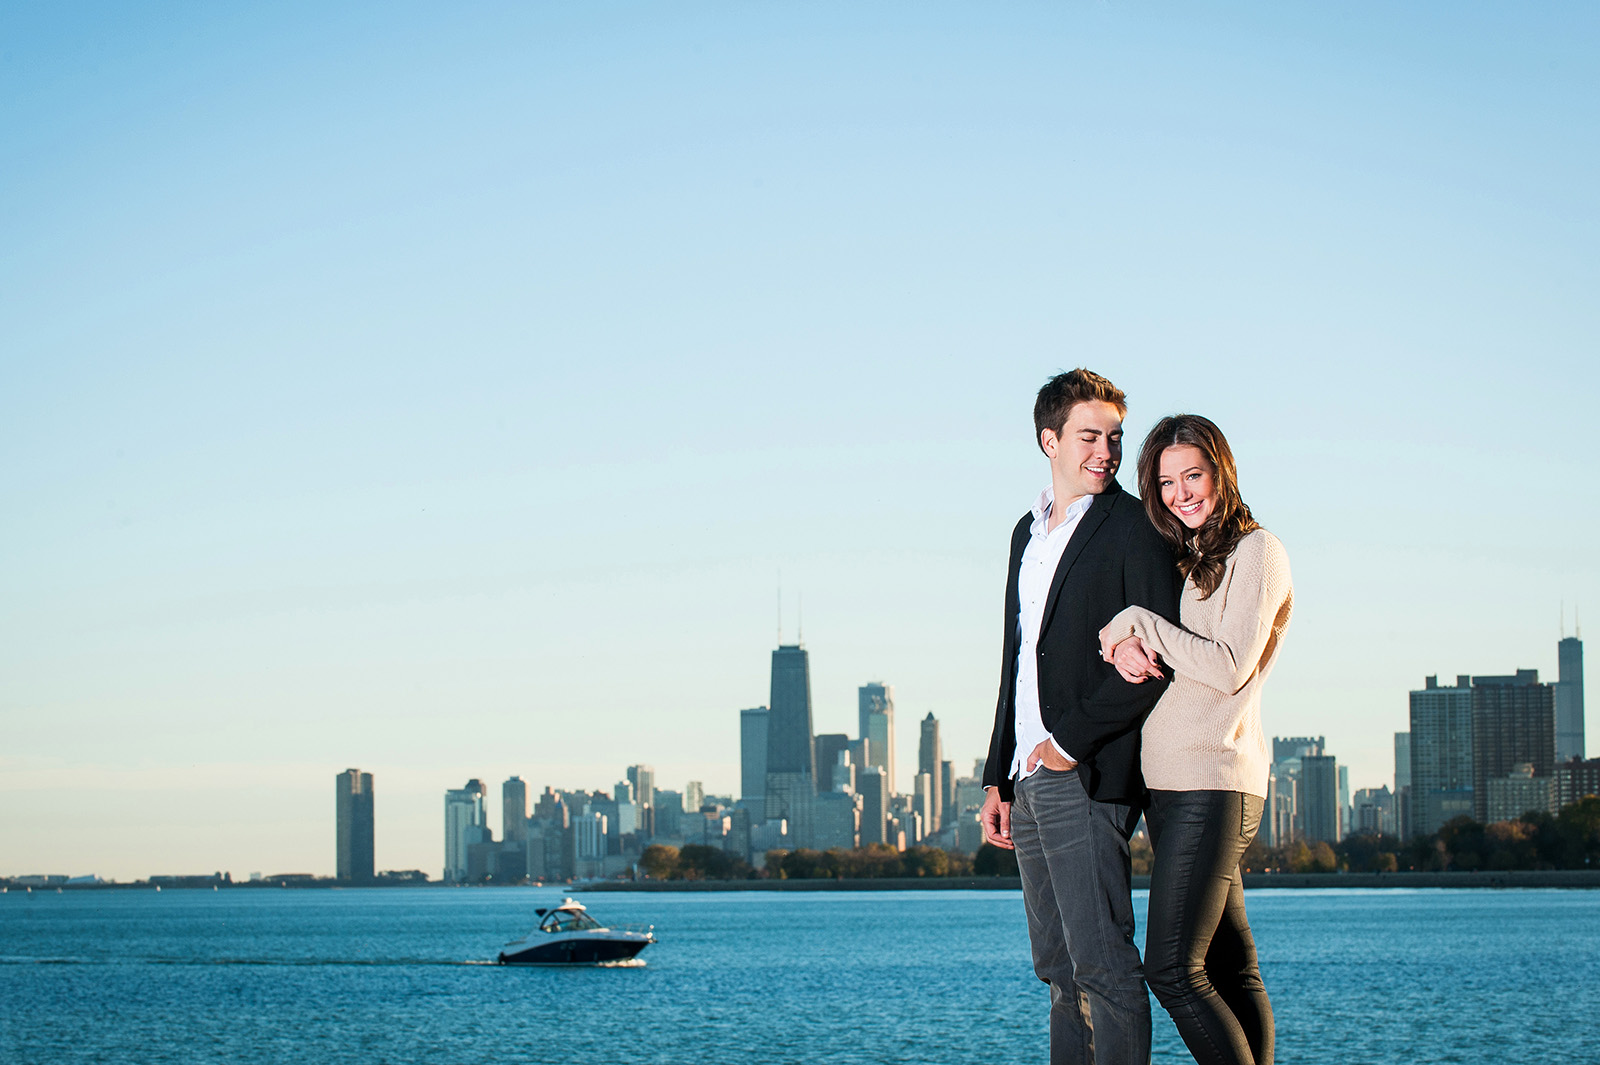 Montrose Avenue Beach Engagement Session Location in Chicago